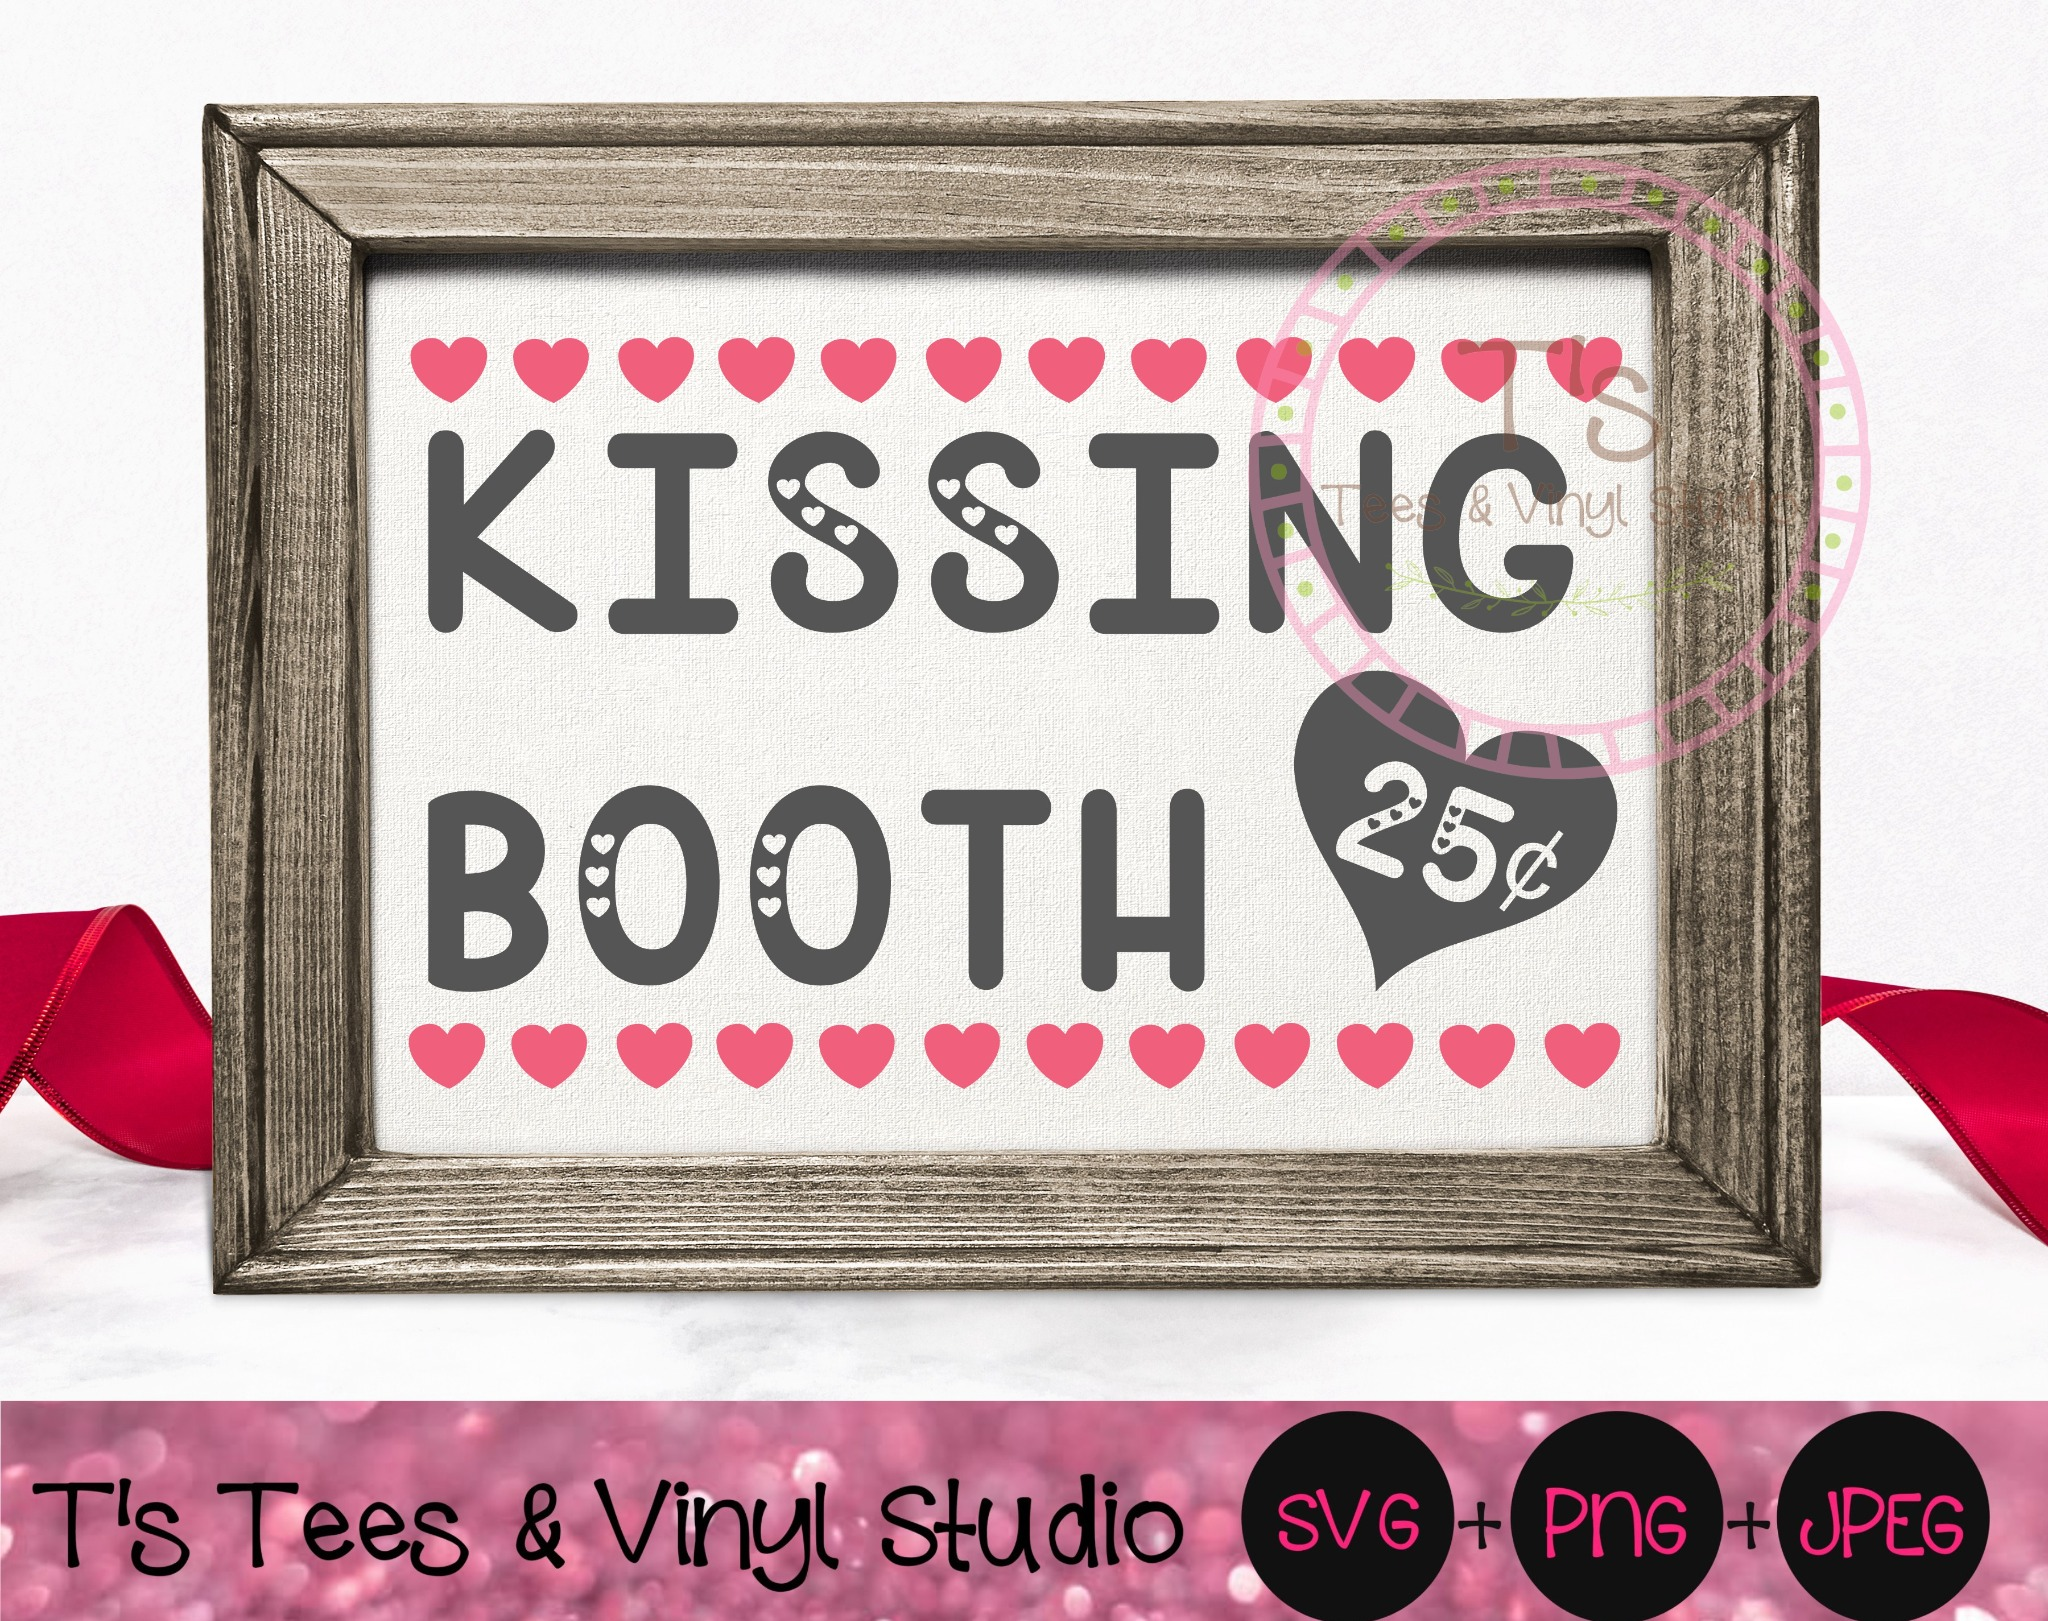 Kissing Booth Svg, Valentine's Day, Valentine, Kisses Png, 25 Cents, Kiss Me, Cute Sign, Hearts, Lov